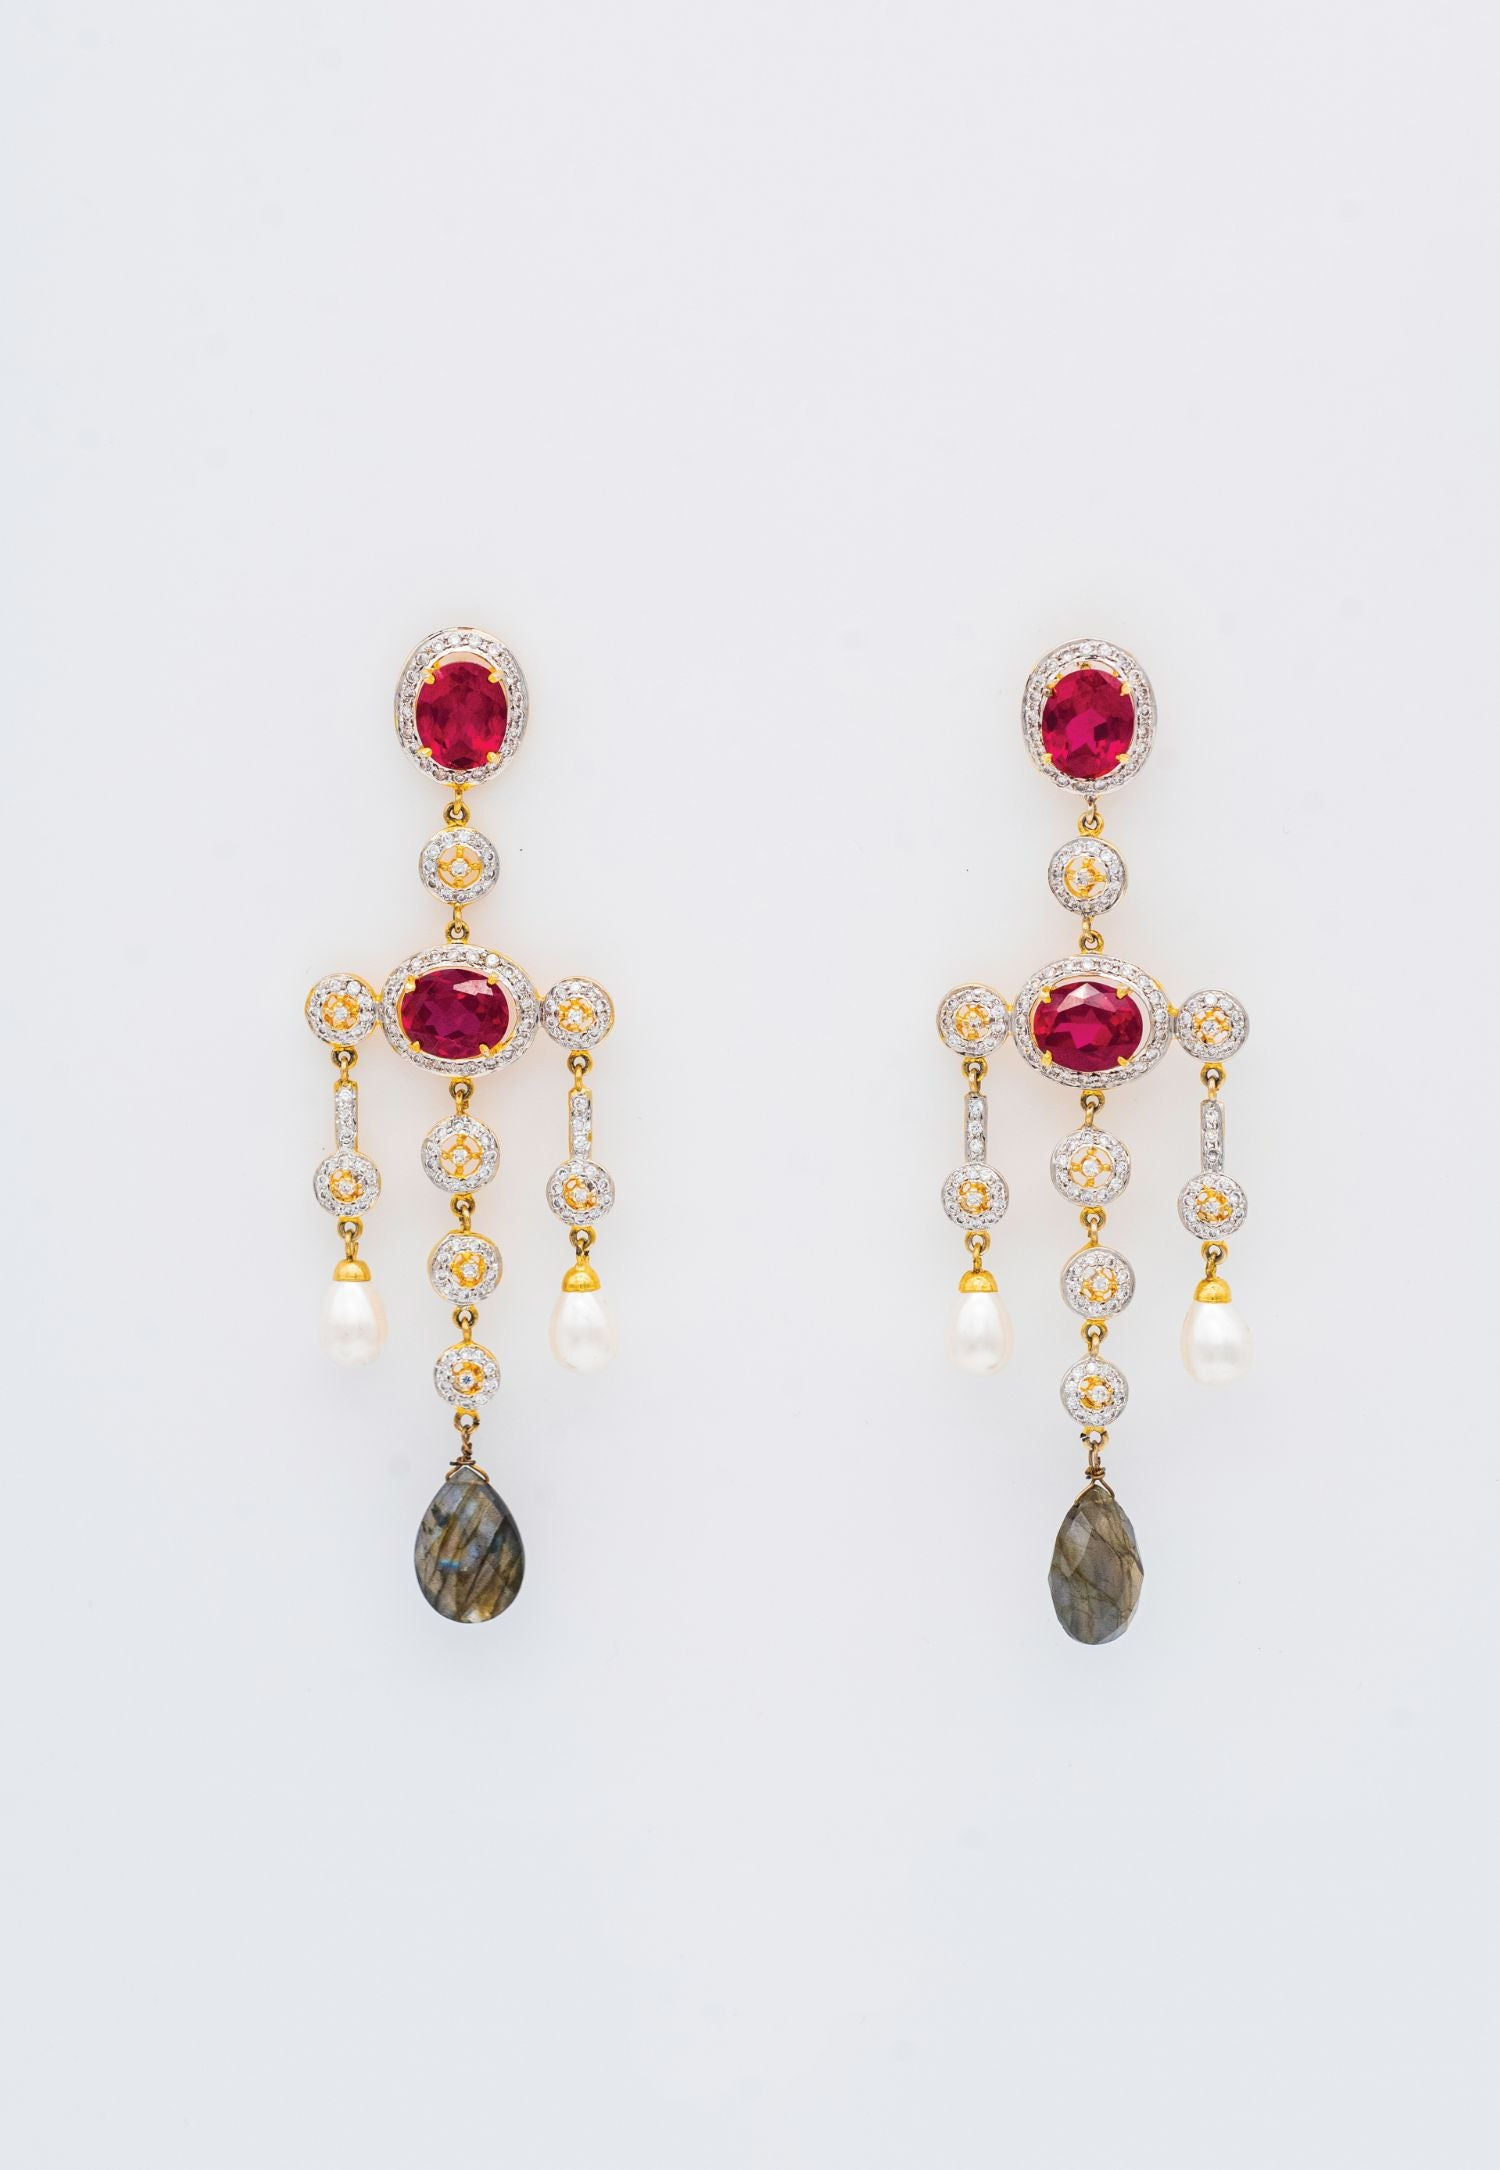 RED, GRAY AND CUBIC ZIRCONIA RHINESTONES CHANDELIER EARRINGS